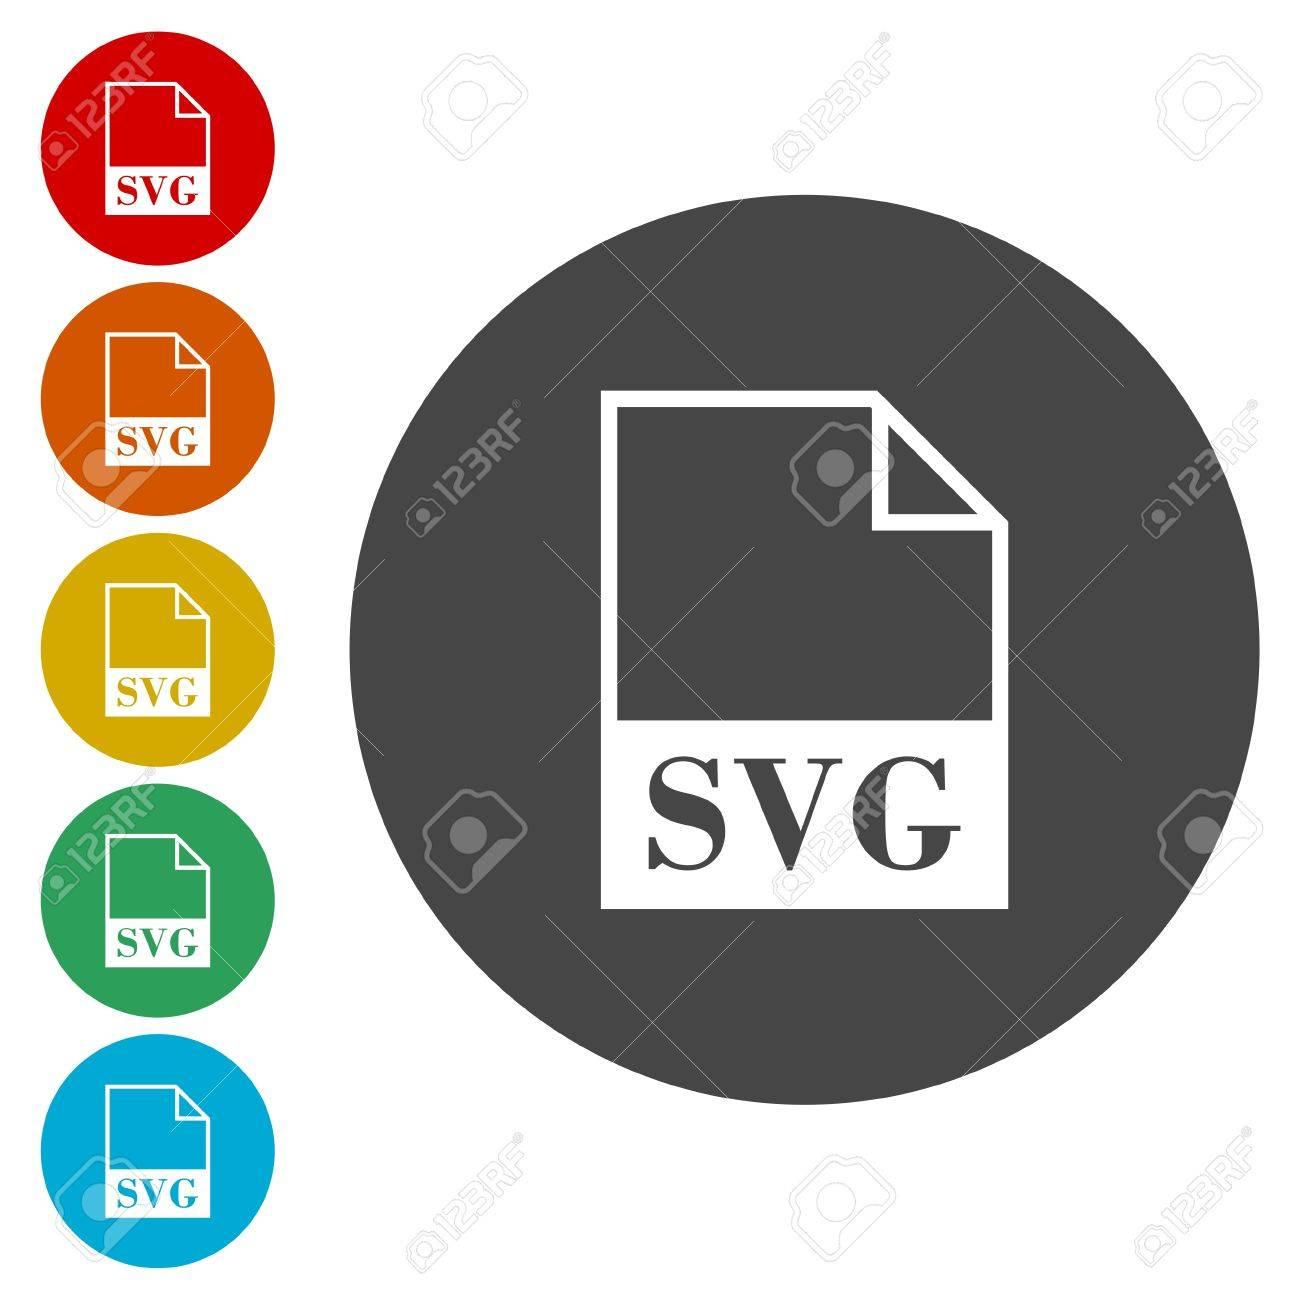 SVG file icons set Stock Vector - 77686882